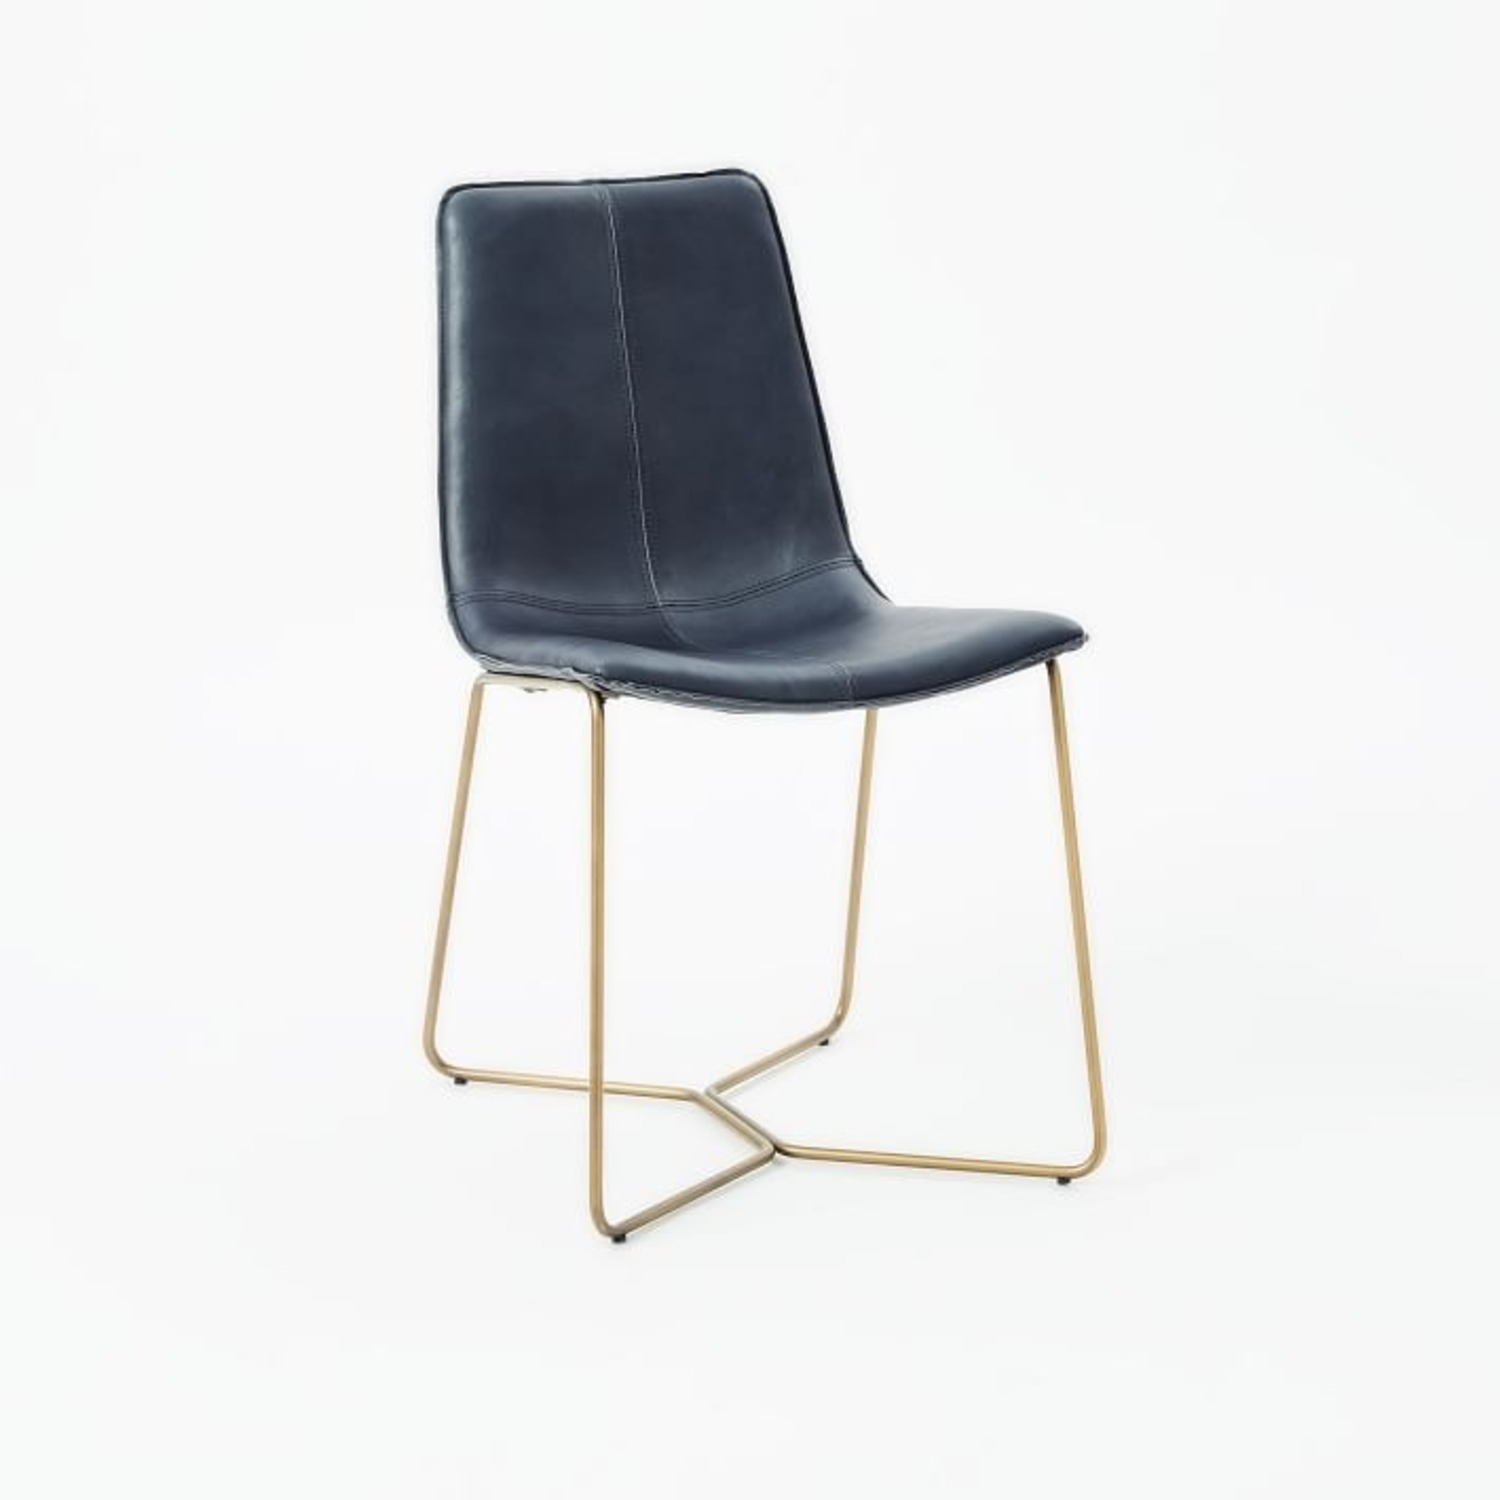 West Elm Slope Leather Dining Chair - image-2